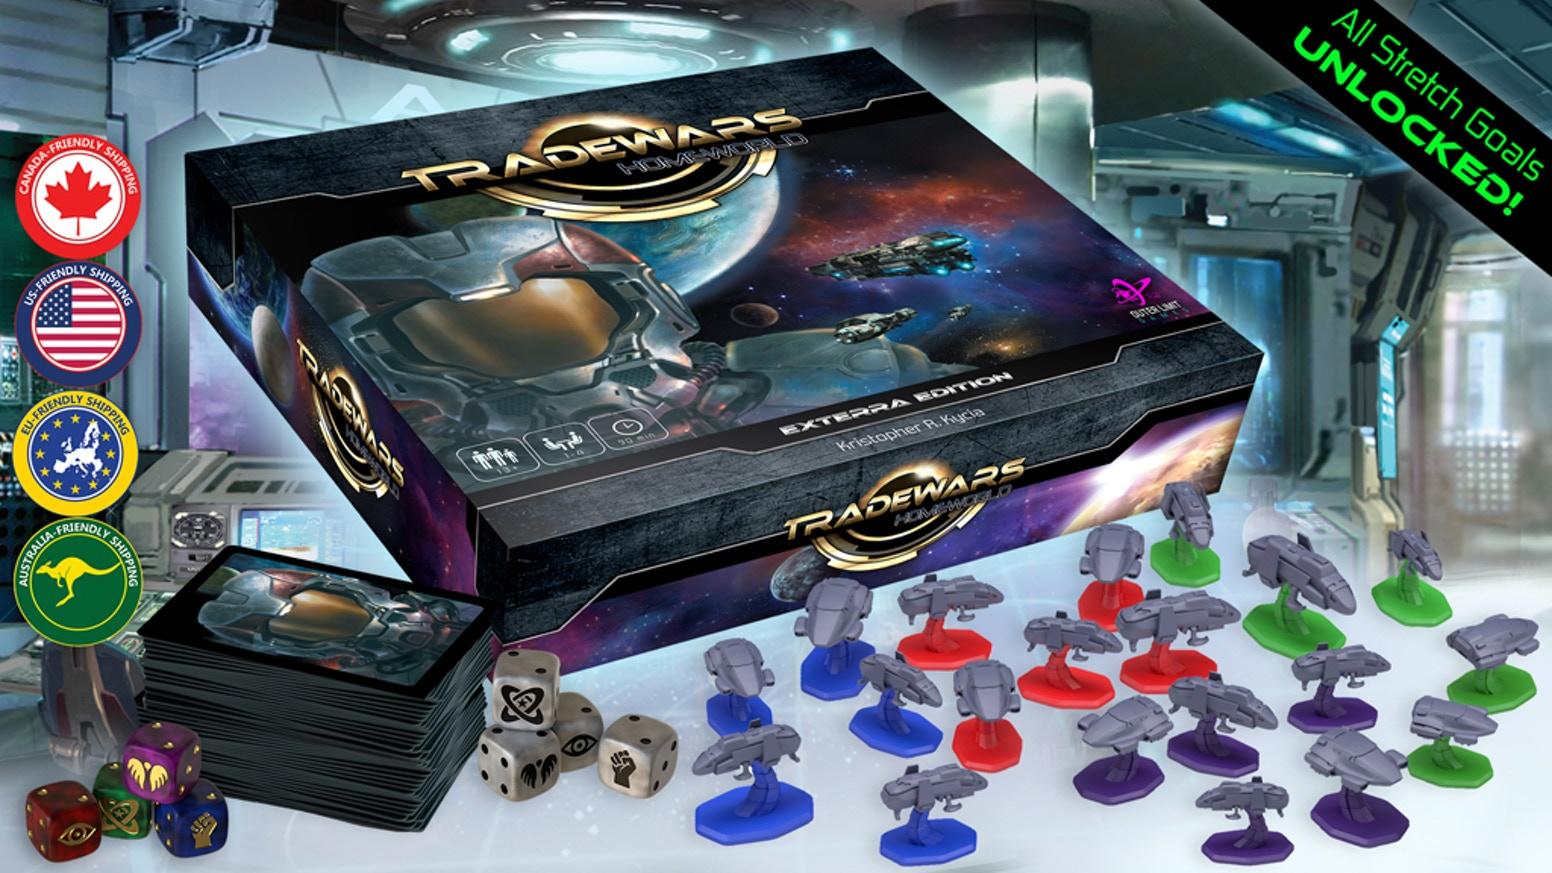 Lead one of the last Terran factions in the galaxy & defend your Homeworld! A role-driven deck-building board game for 1-4 adventurers.